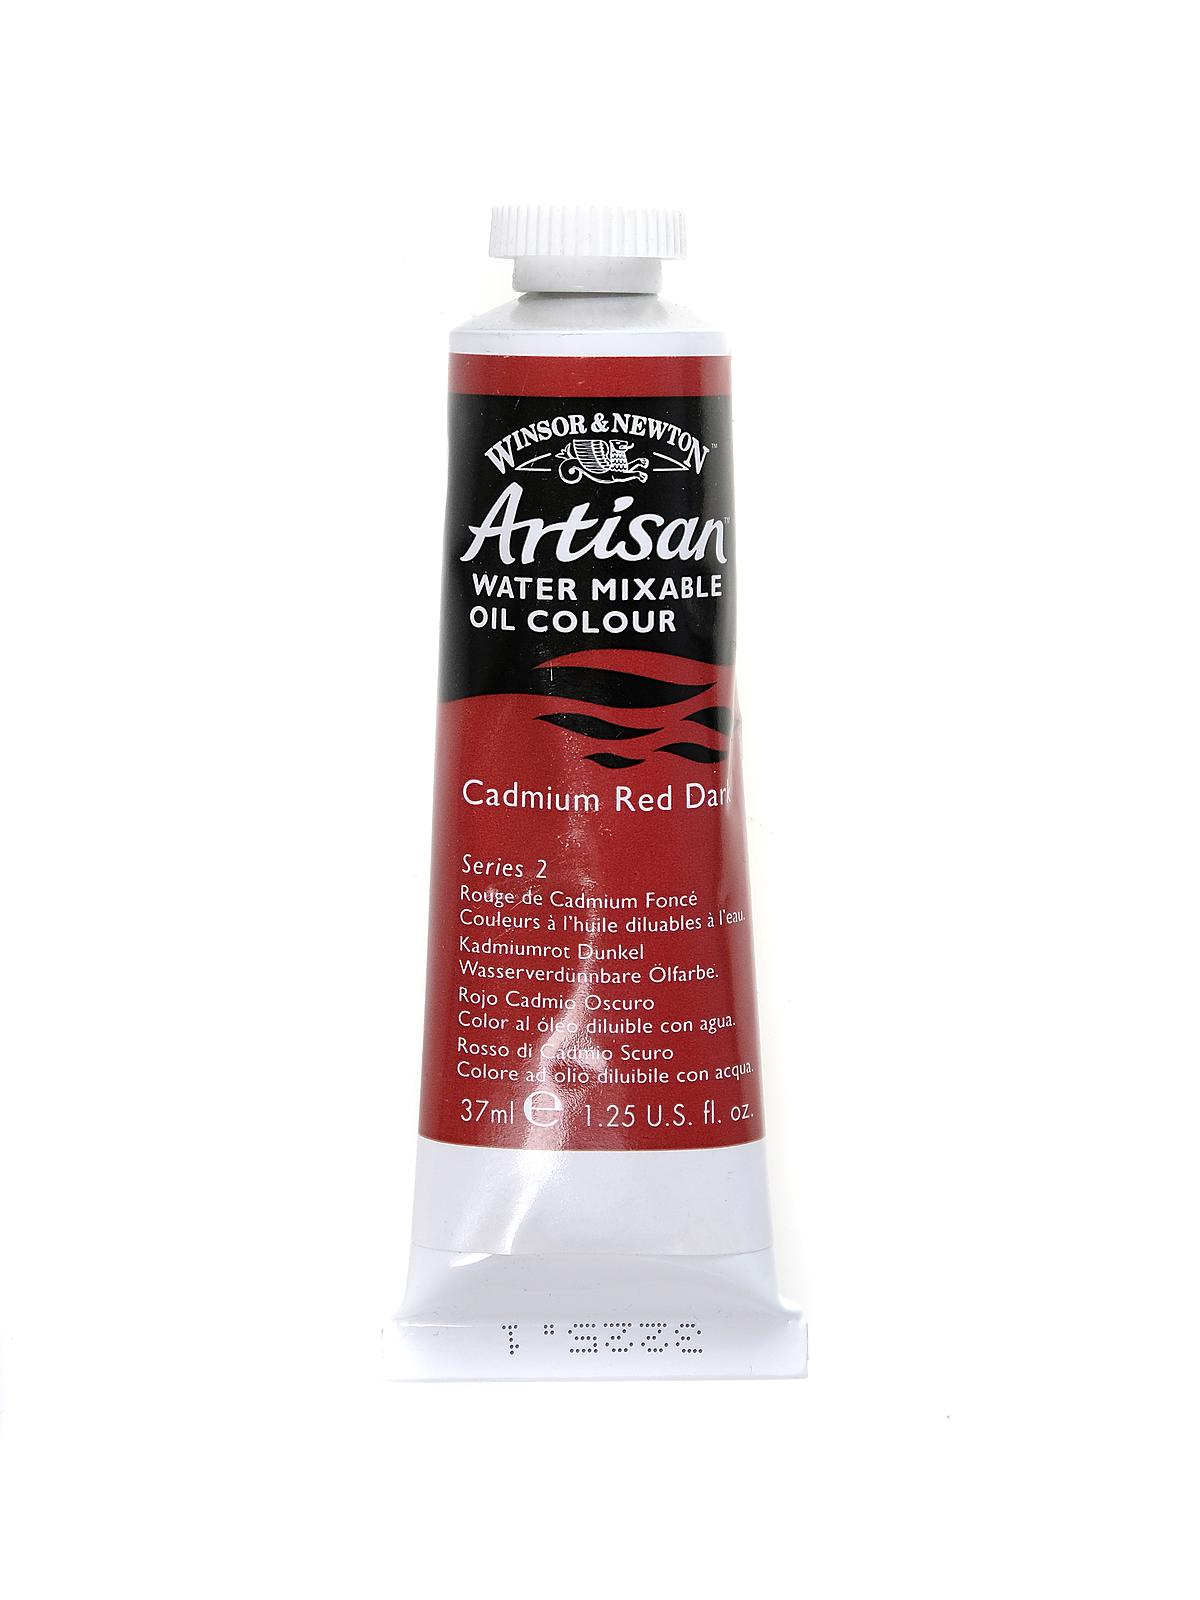 Artisan Water Mixable Oil Colours Cadmium Red Dark 37 Ml